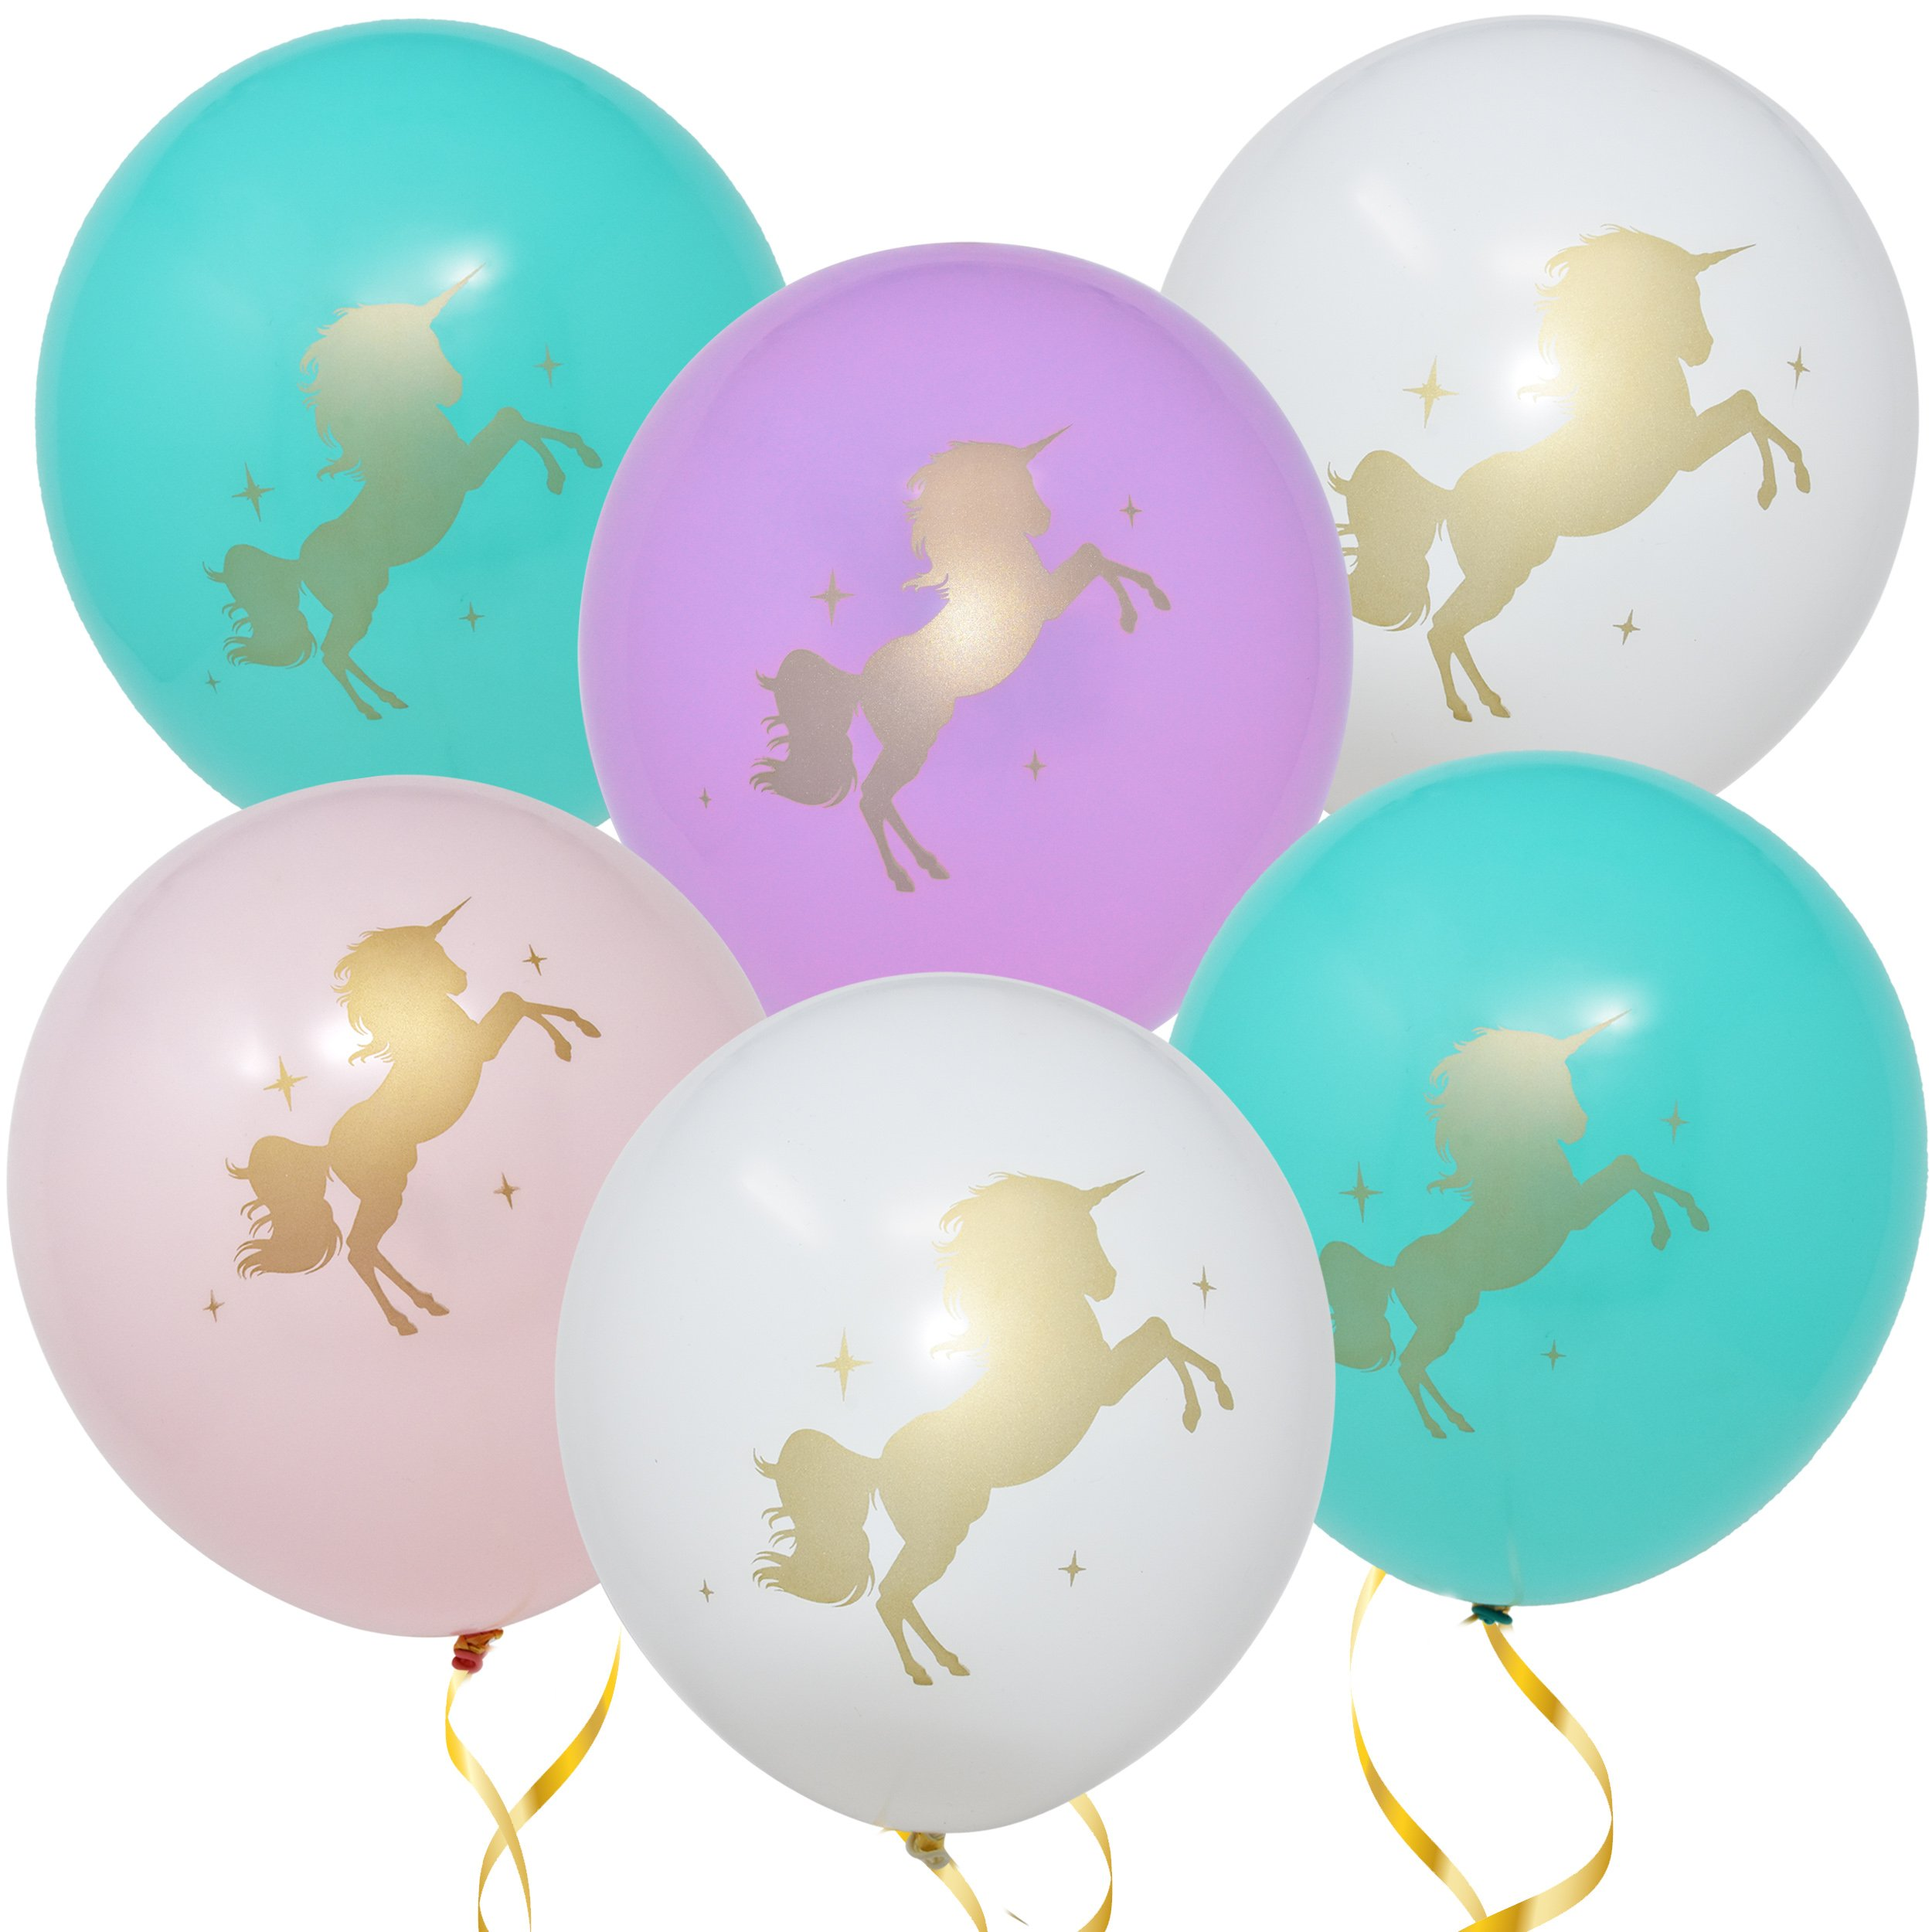 "36 Unicorn Balloons Decorations 36 Pack 12"" Light Pink White Purple and Turquoise Colors With Printed Gold Unicorns for Girls Women Kids Baby Shower Birthday Party Favor Supplies by Gift Boutique"